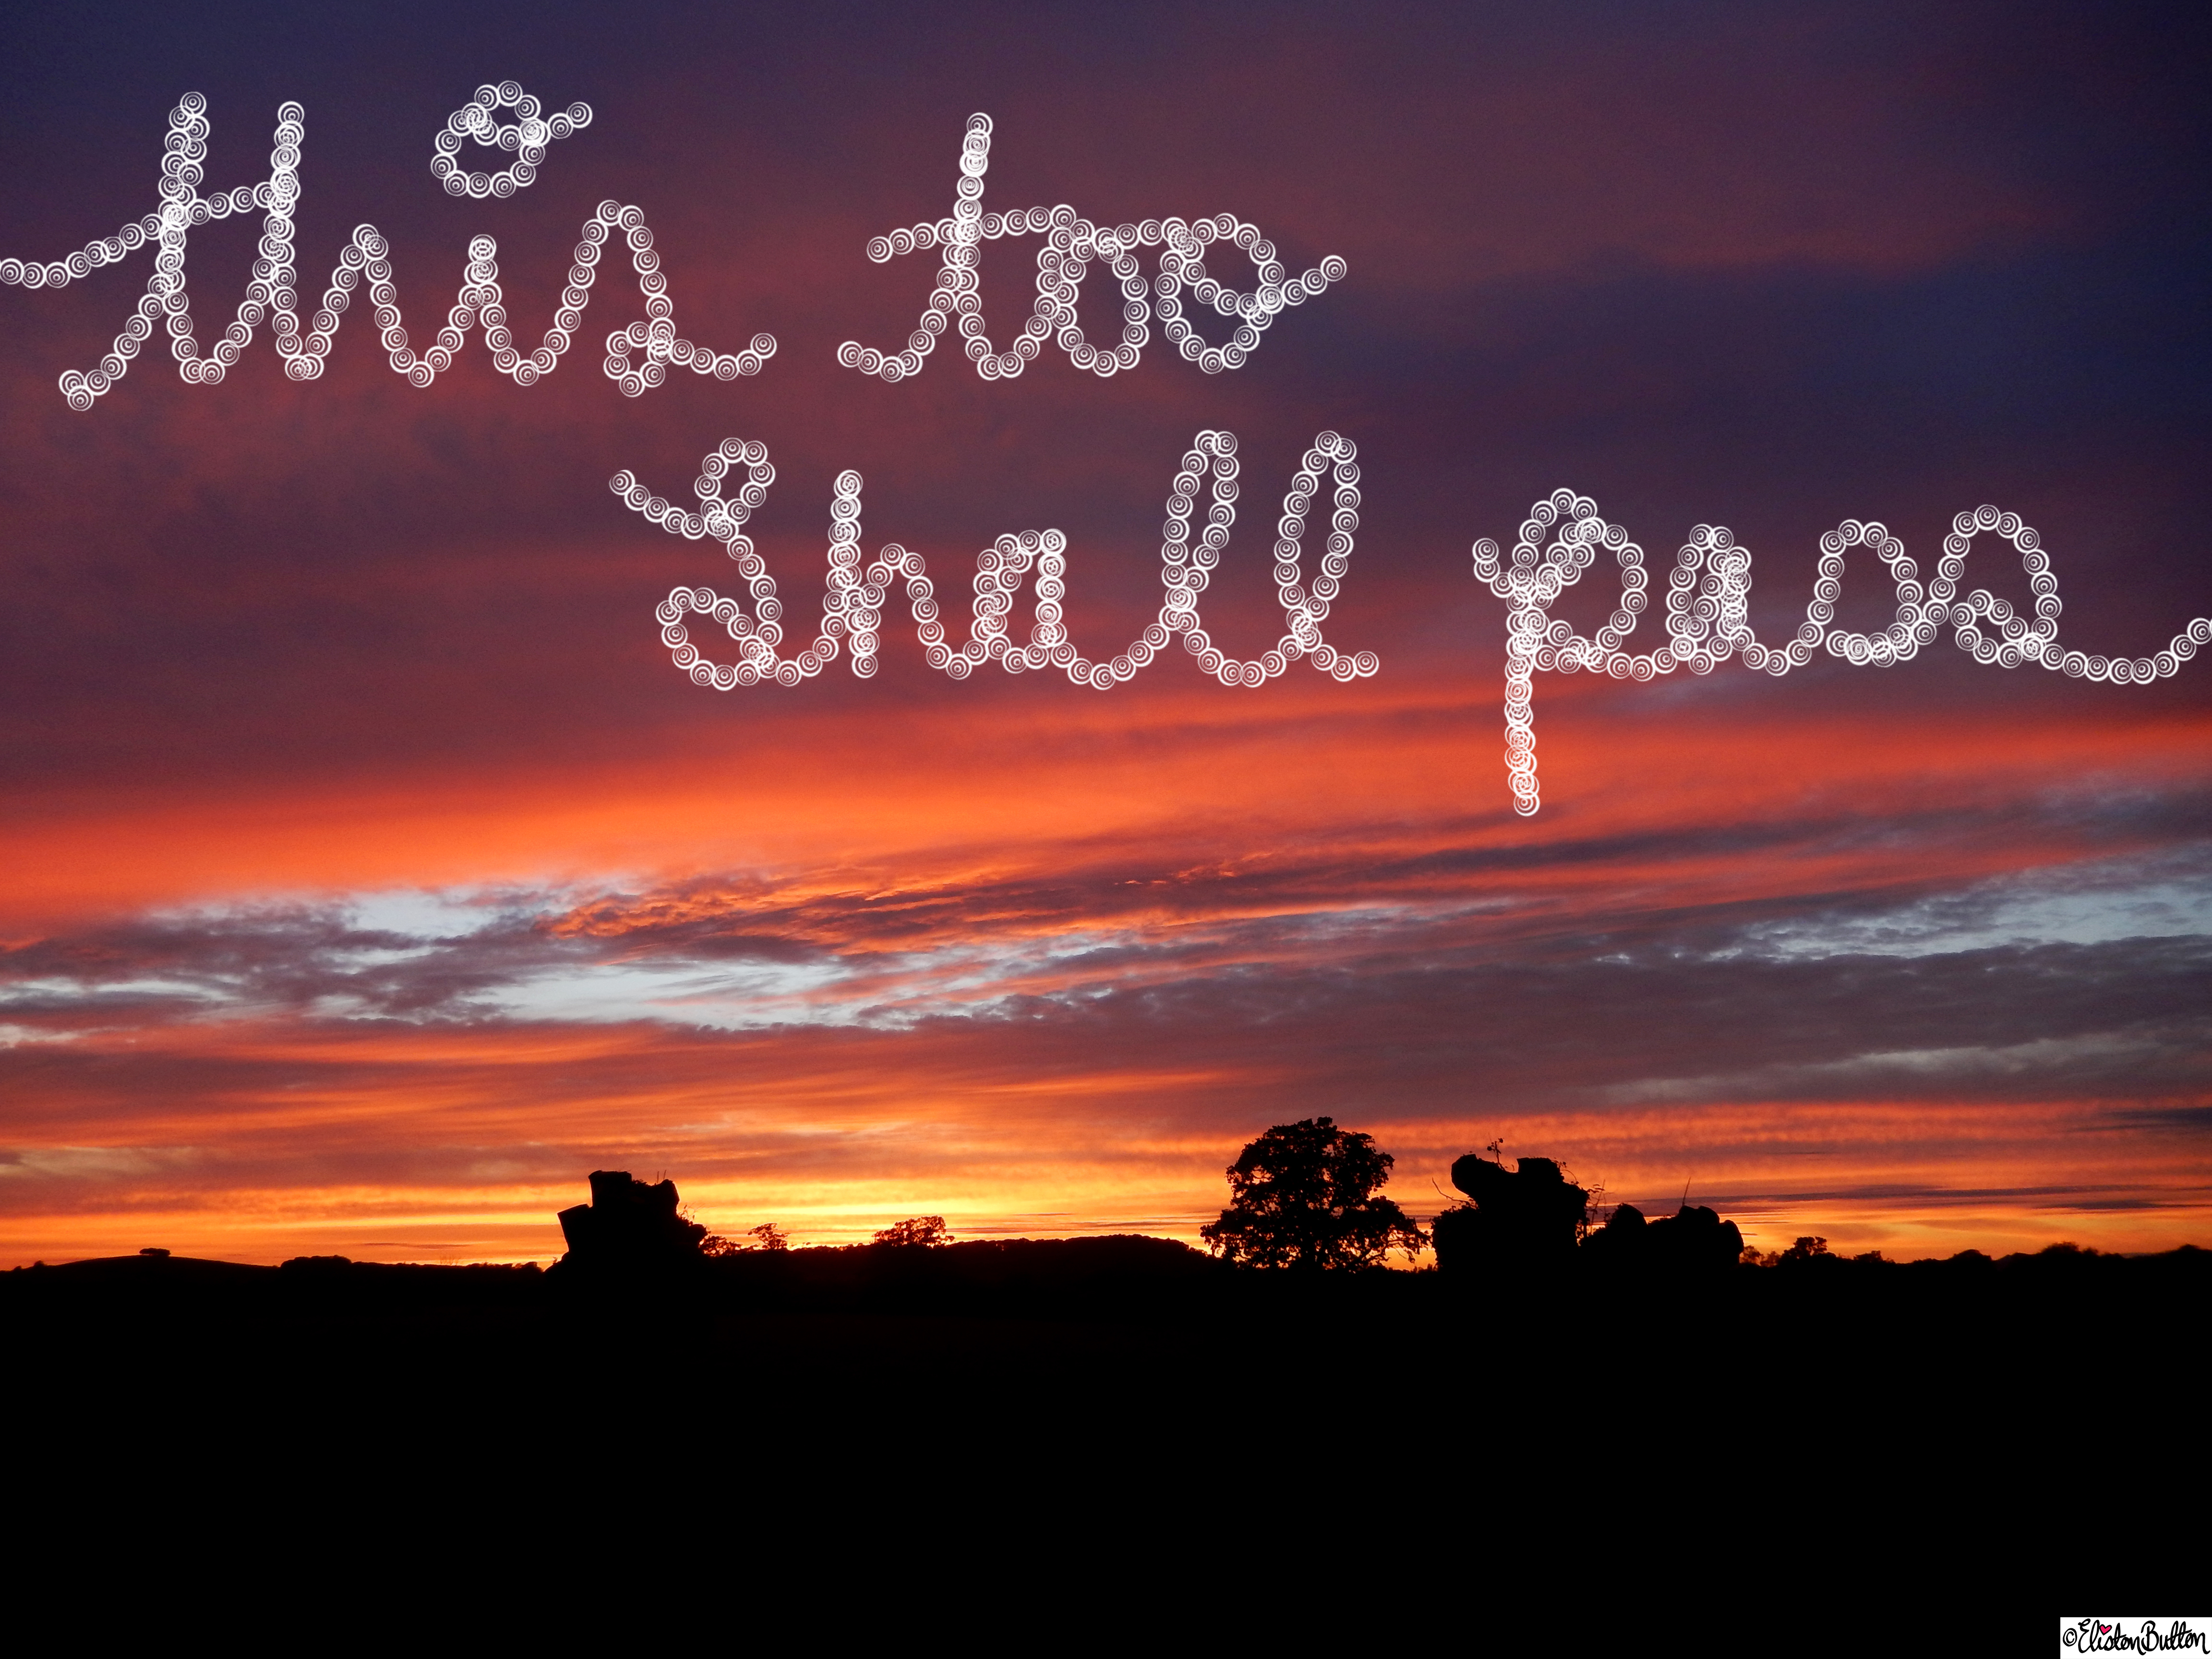 This Too Shall Pass Quote Sunset Photograph - It's Not You...It's Me (and why this isn't a break-up) at www.elistonbutton.com - Eliston Button - That Crafty Kid – Art, Design, Craft & Adventure.